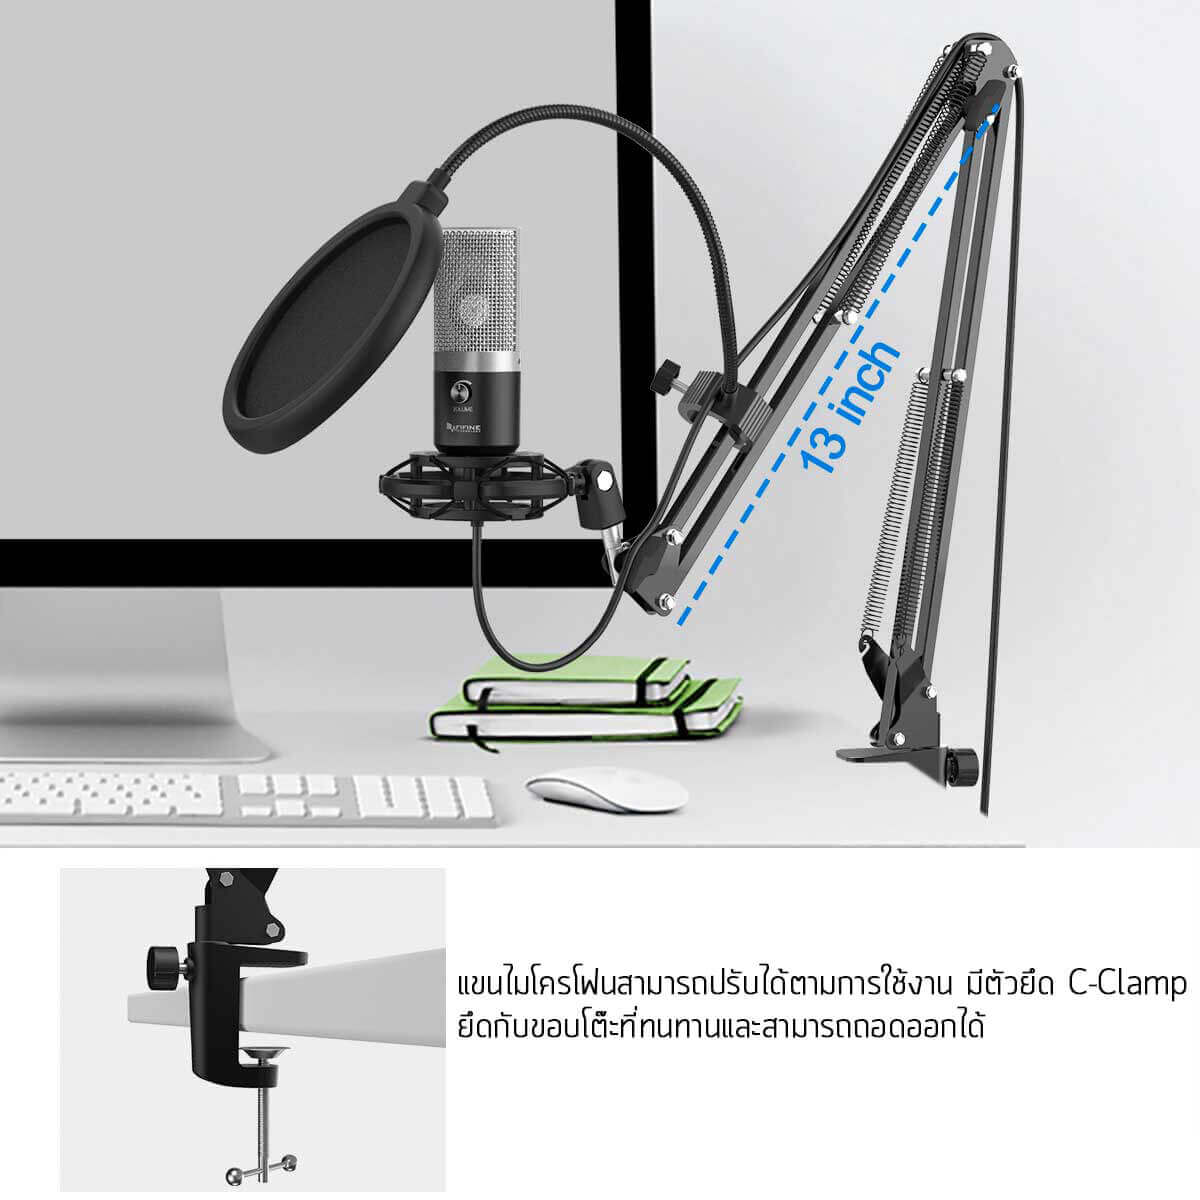 FIFINE T670 USB MICROPHONE